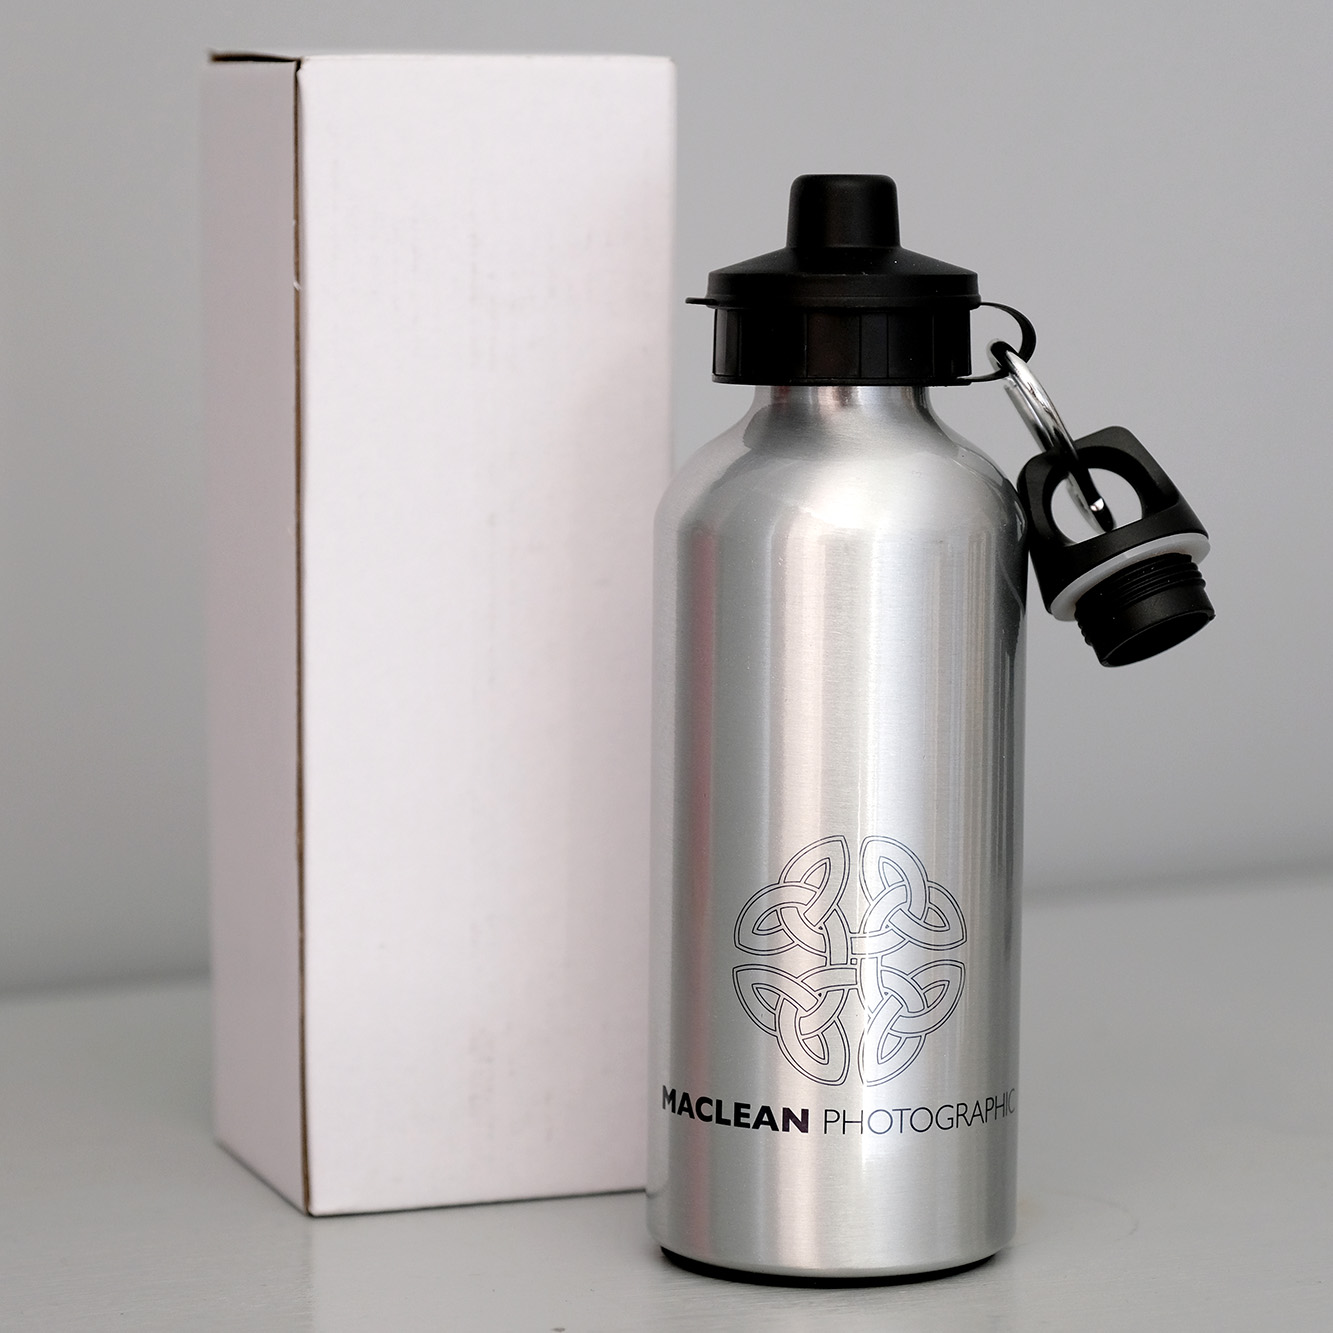 FREE REUSABLE WATER BOTTLE    The scourge of single use plastics is big news. MacLean Photographic will stop giving our guests single use plastic bottles on the one day photographic workshops, instead giving them a stainless steel water bottle as a gift to keep.